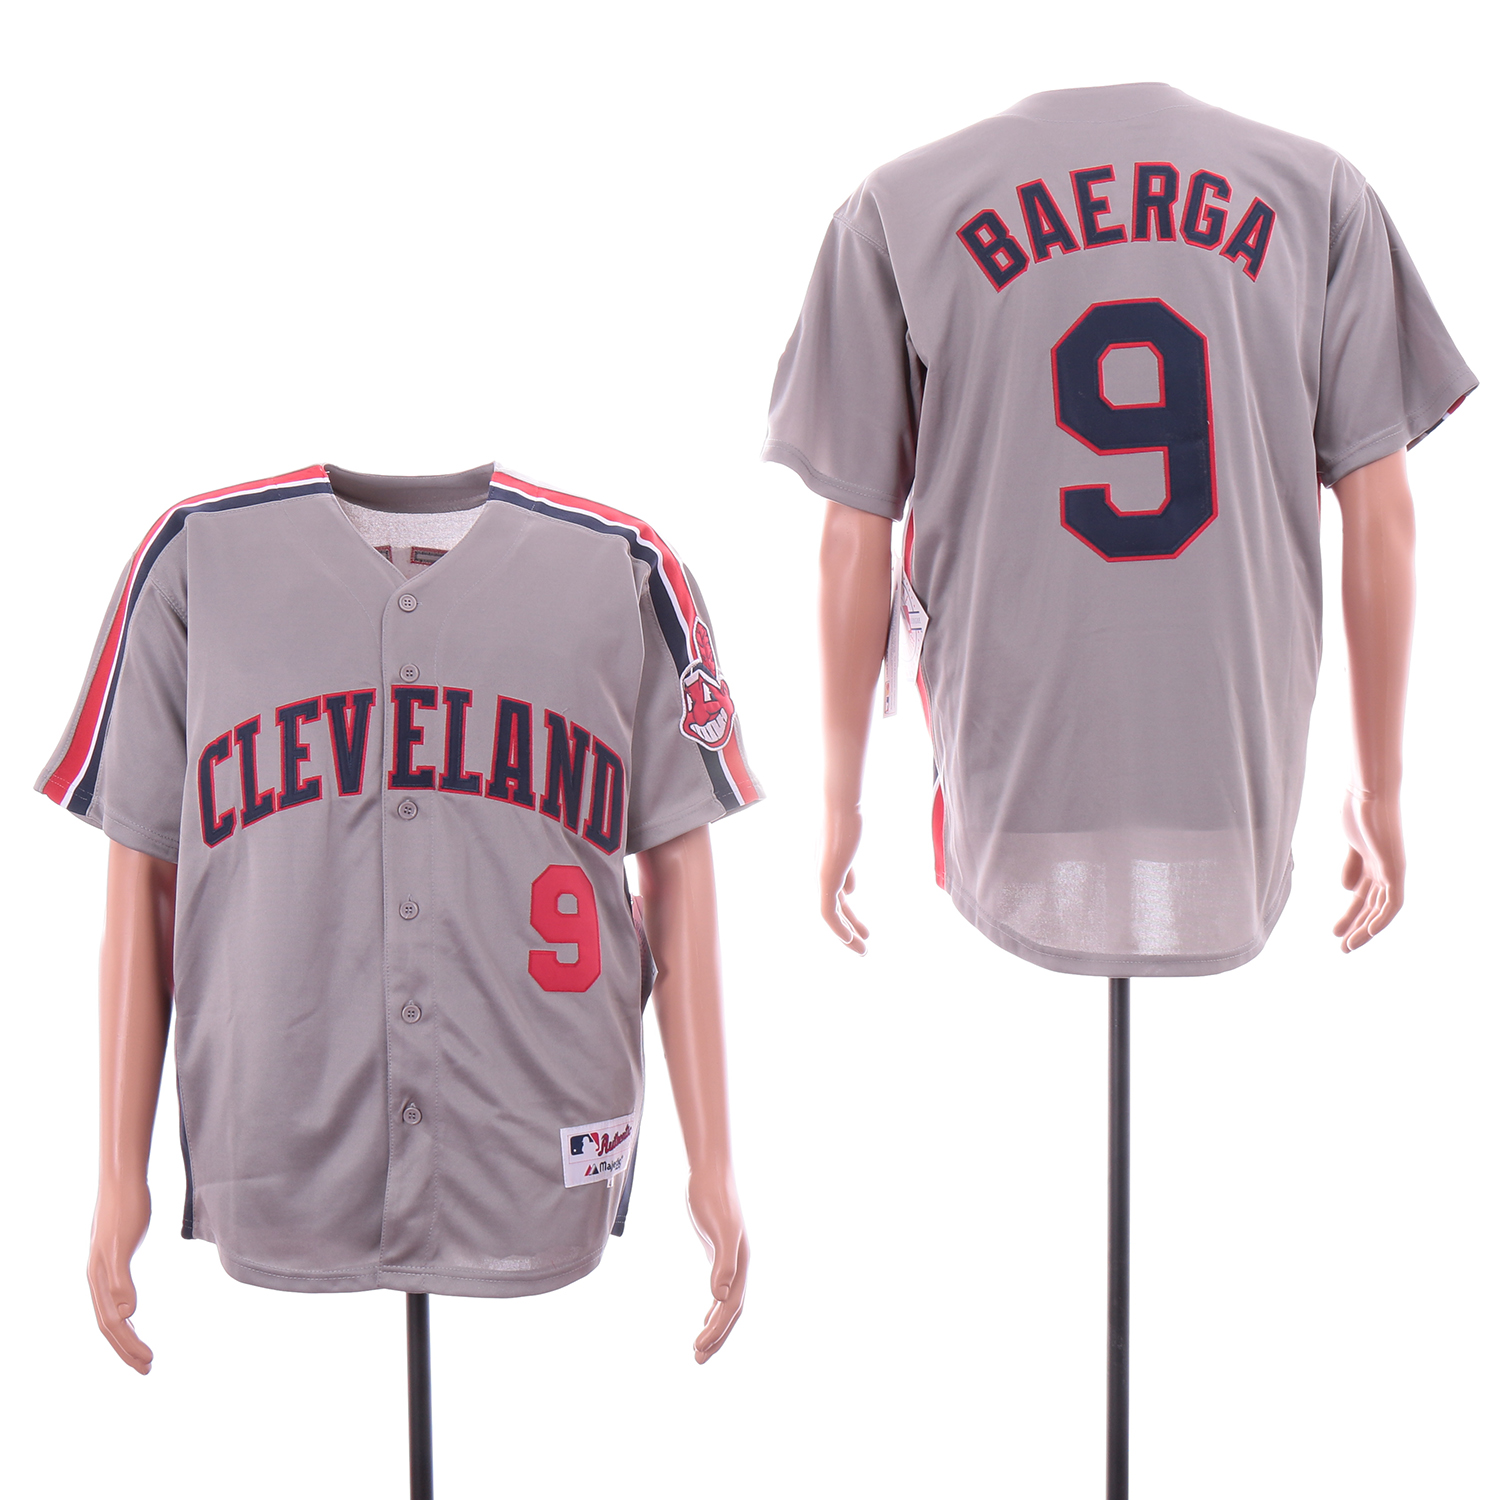 Indians 9 Carlos Baerga Gray Turn Back The Clock Jersey